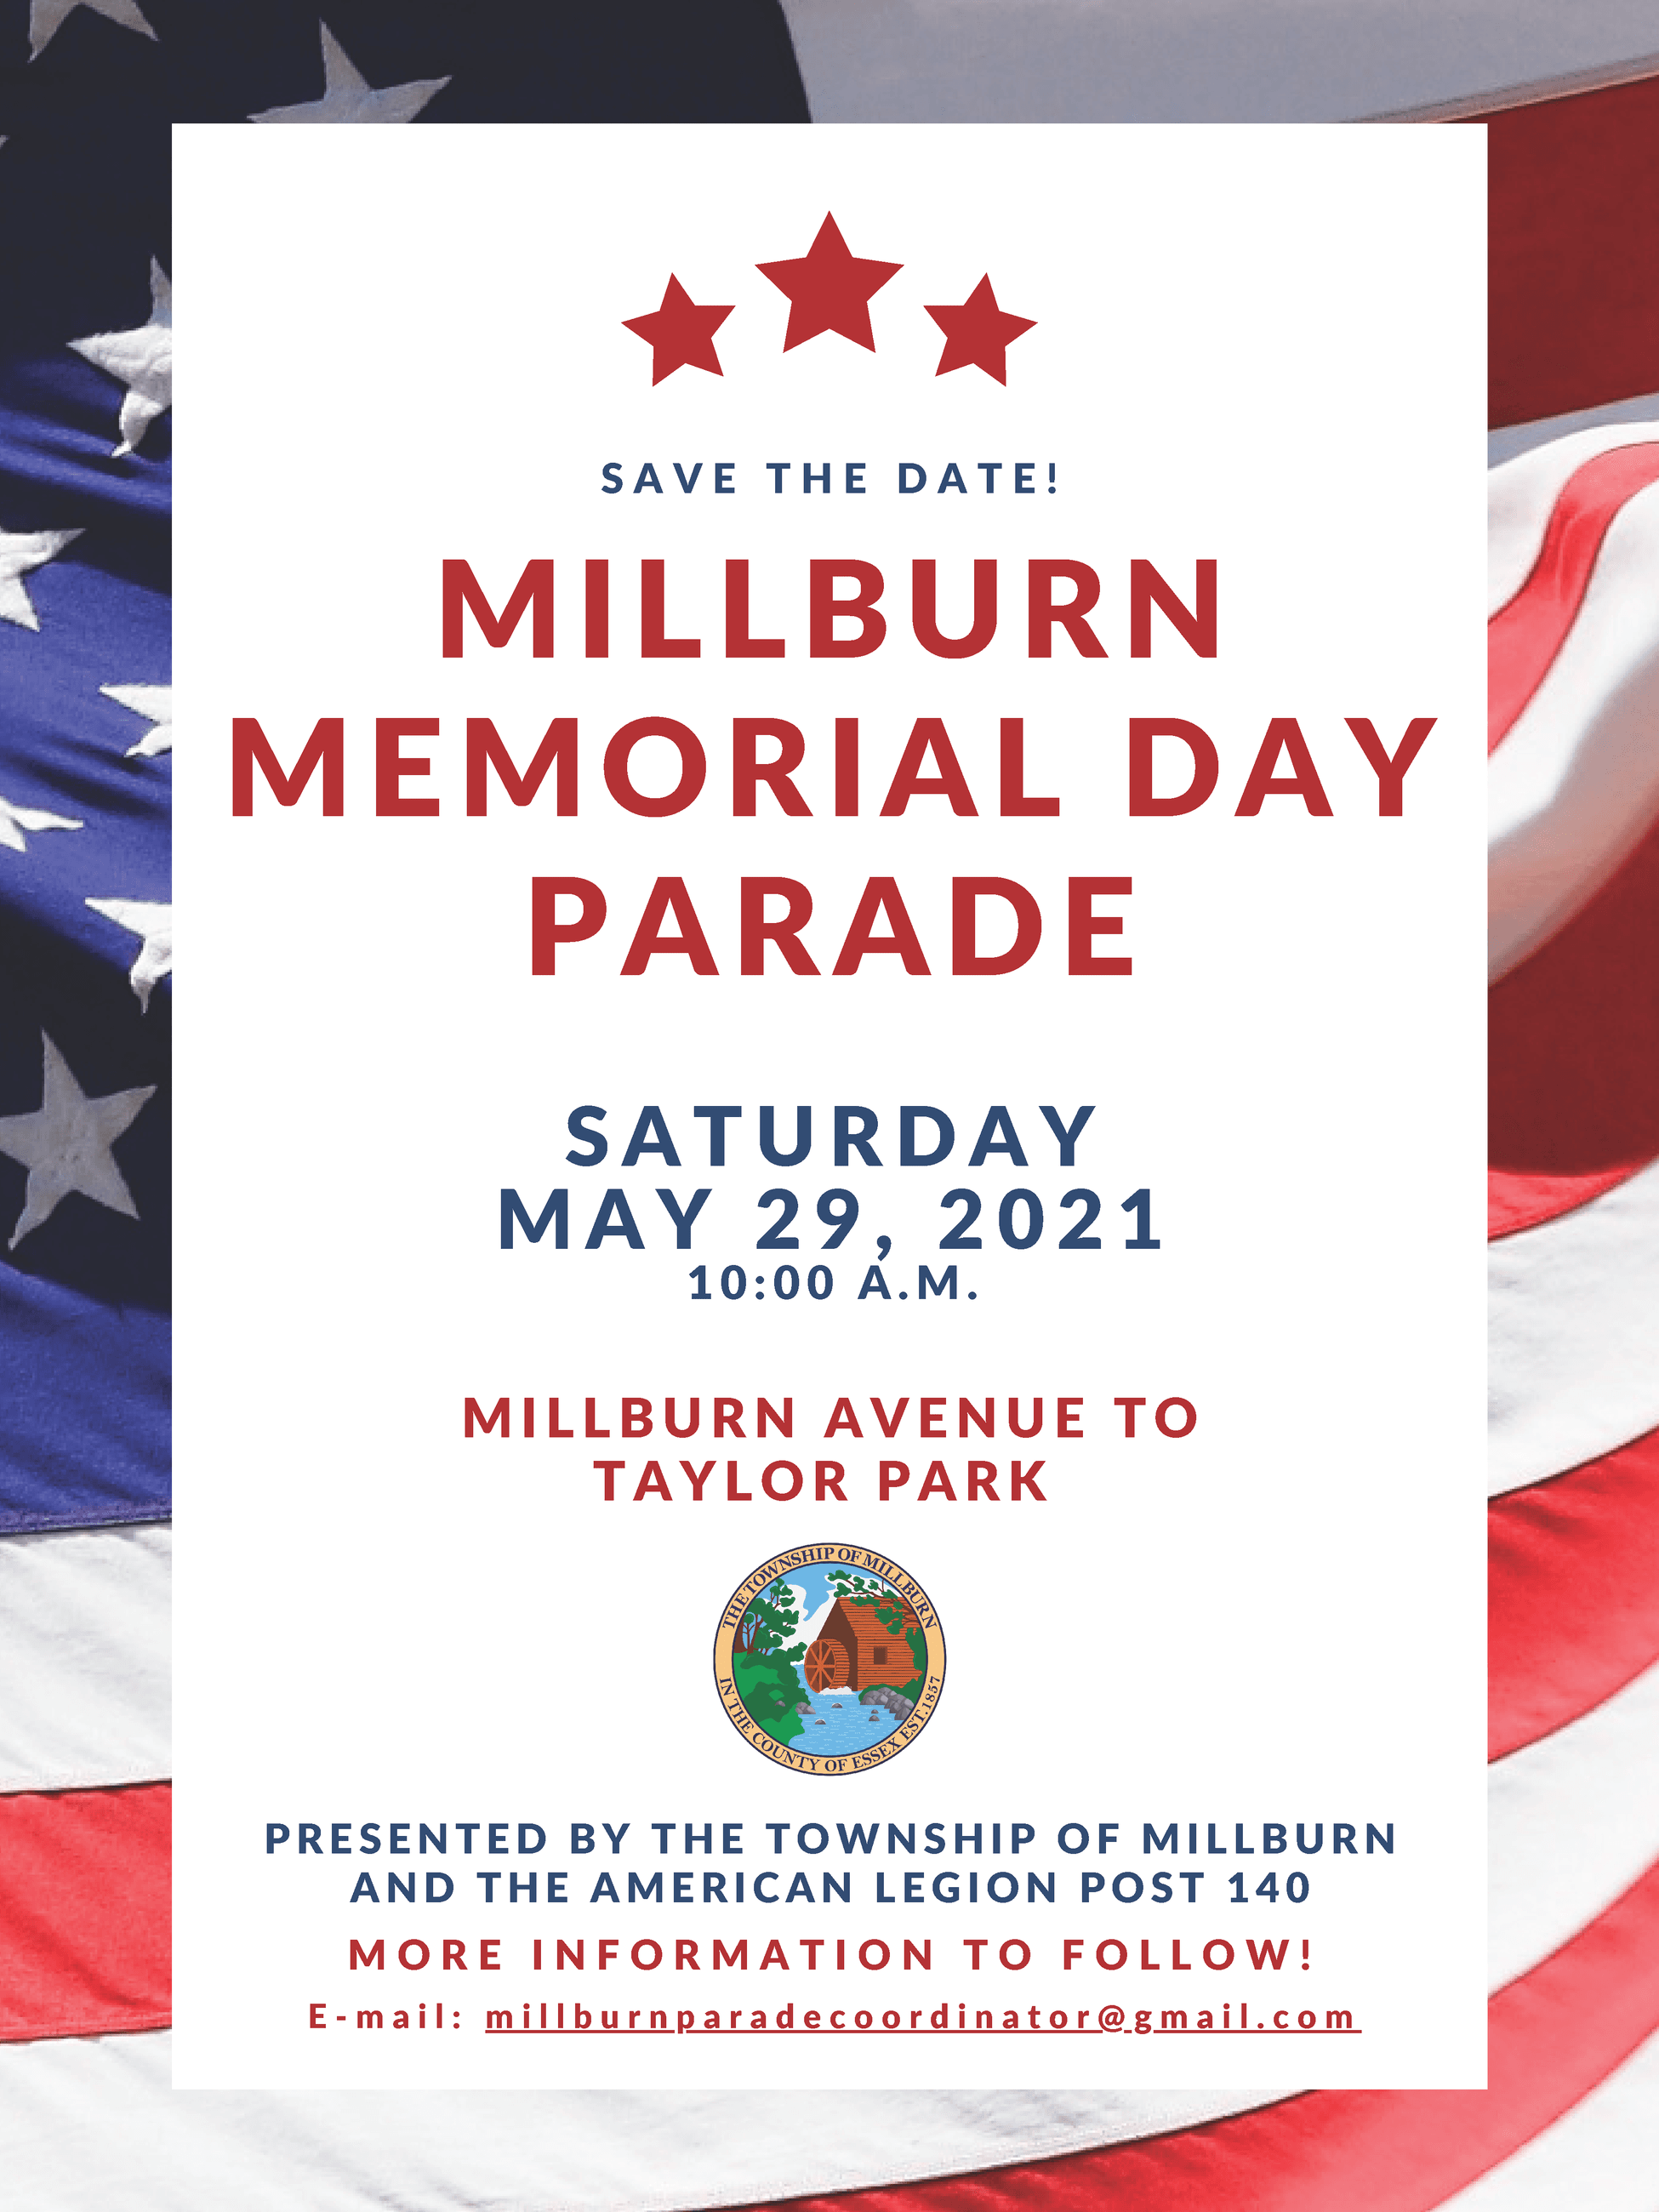 Memorial Day Parade_Save the Date (FINAL)